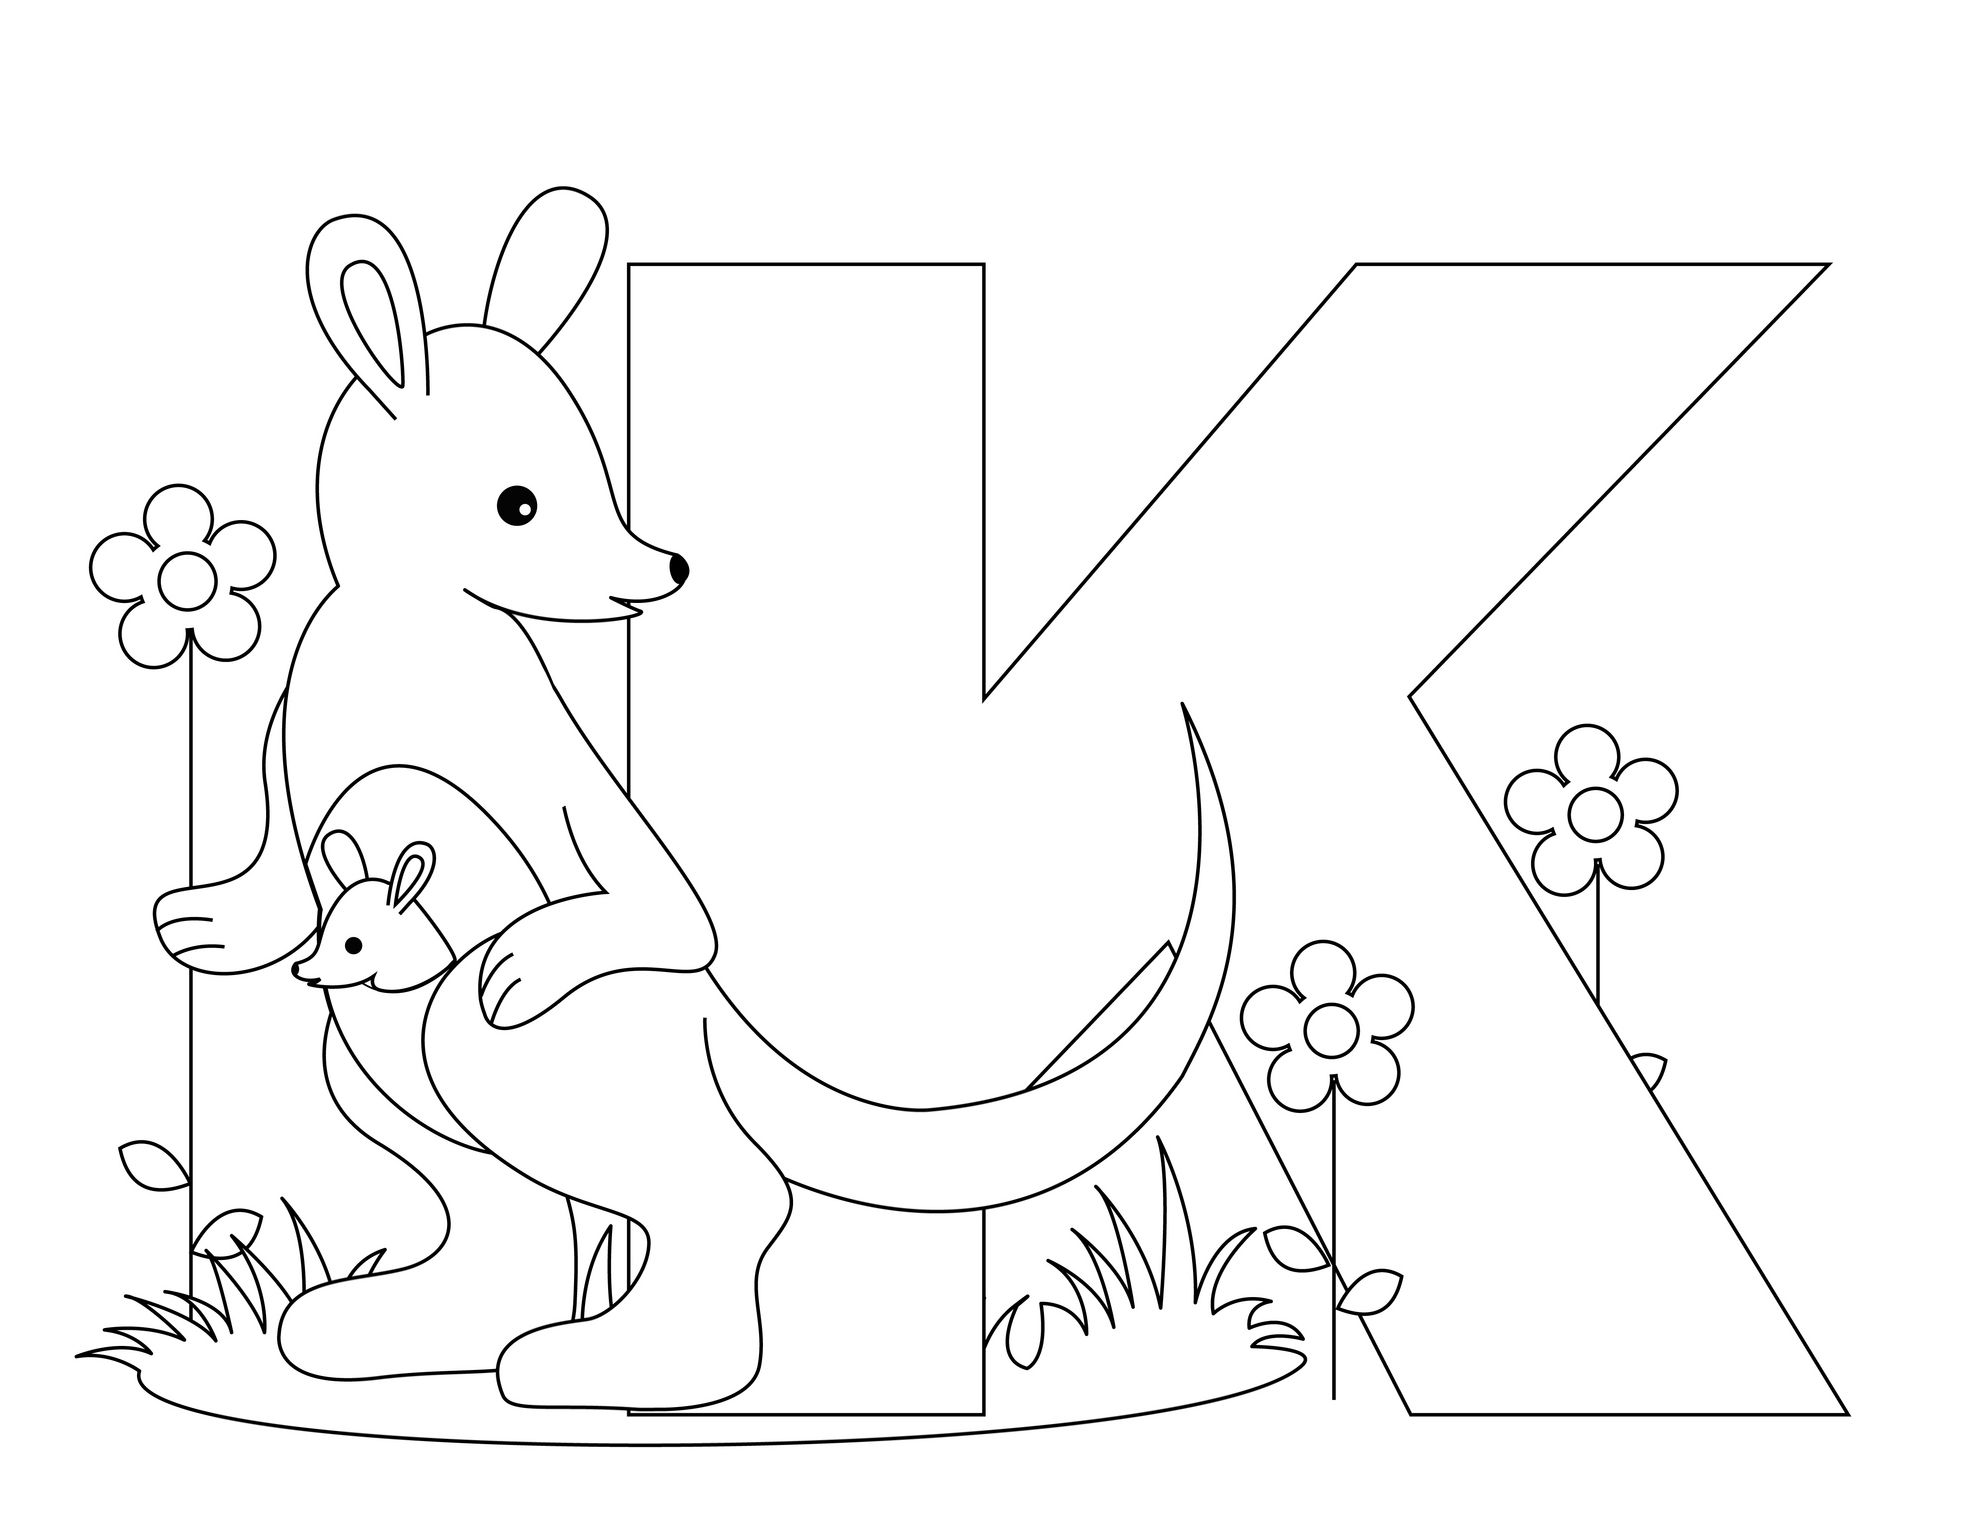 K coloring pages print - Abc Coloring Books Pages For Kids And Printable Abc Adult